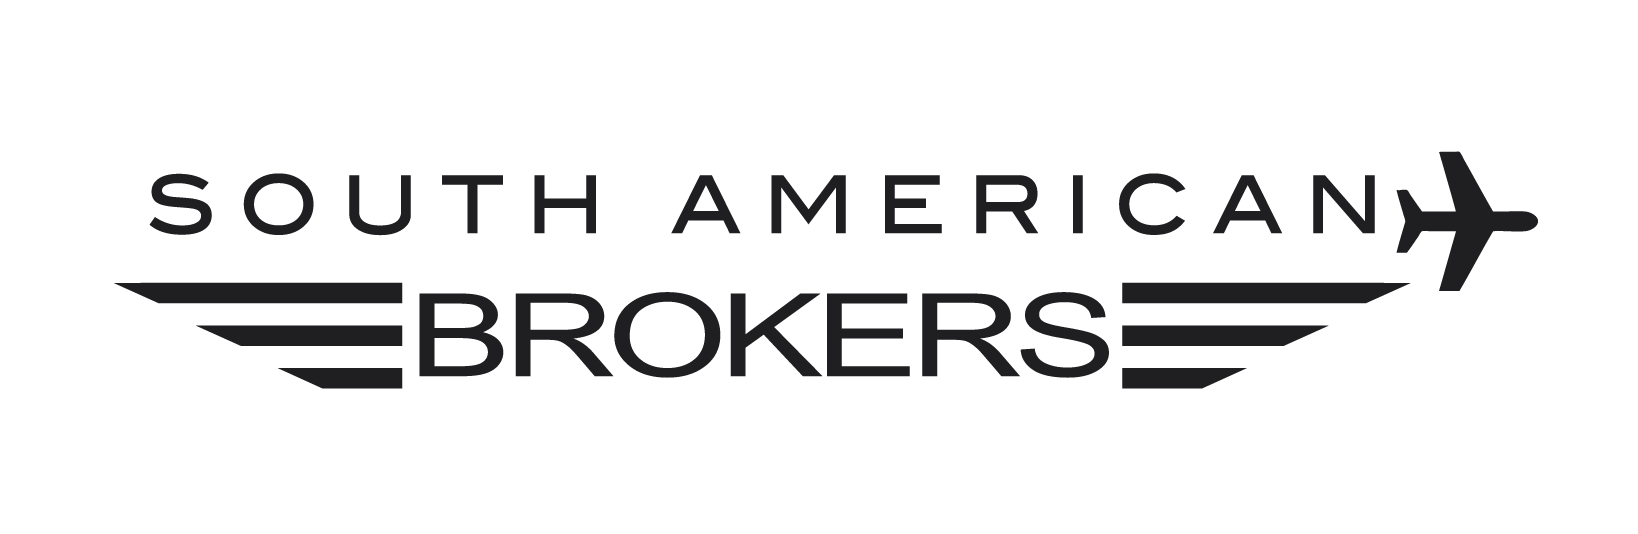 South American Brokers